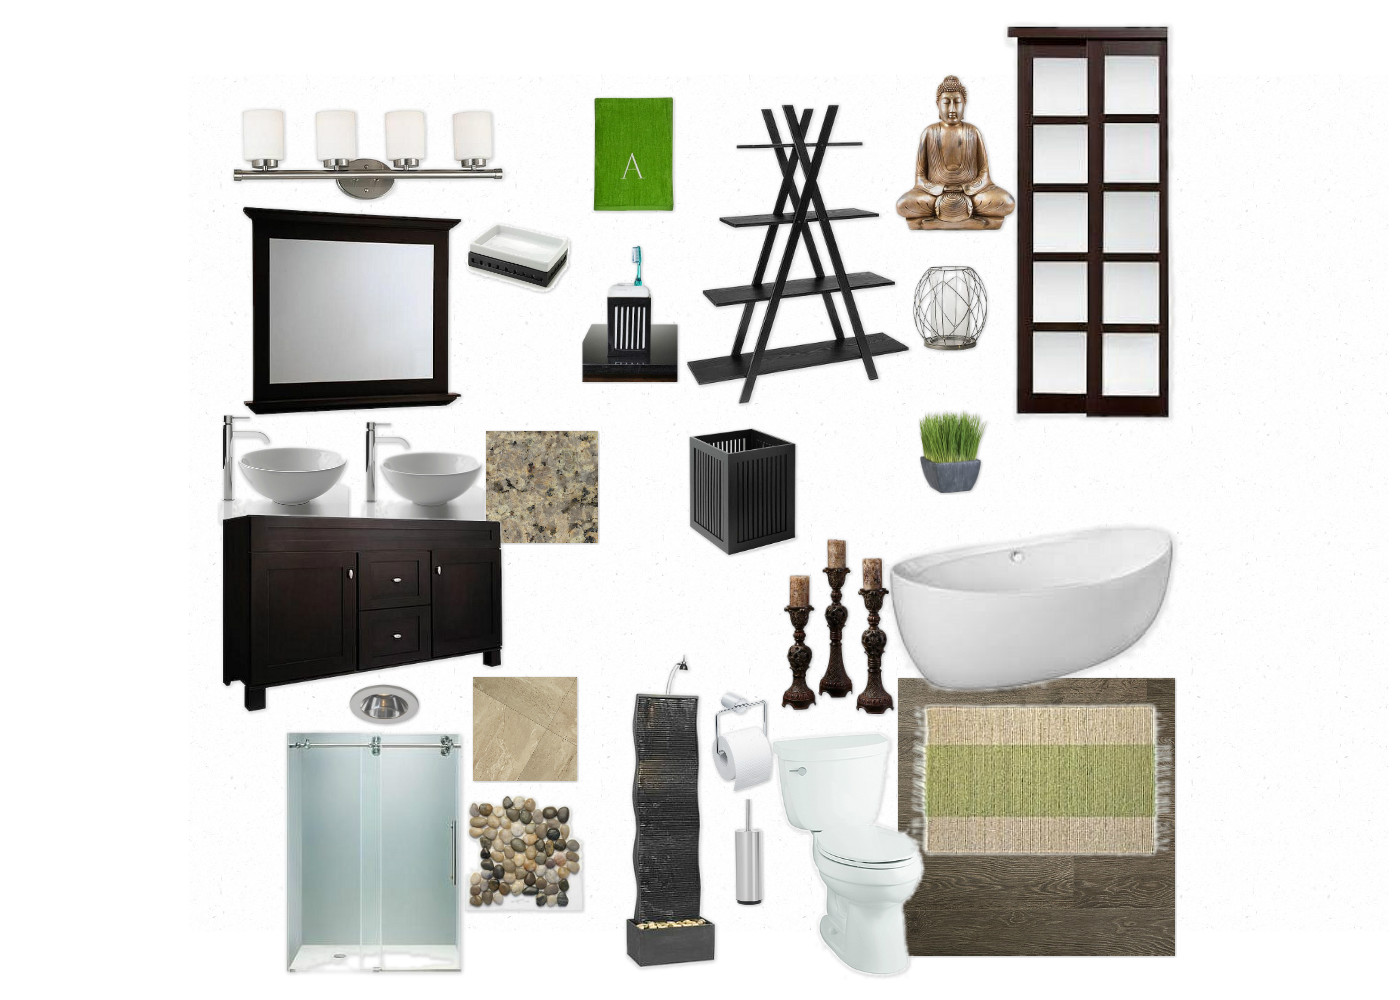 Zen bathroom decor - Zen Bathroom Decor 24